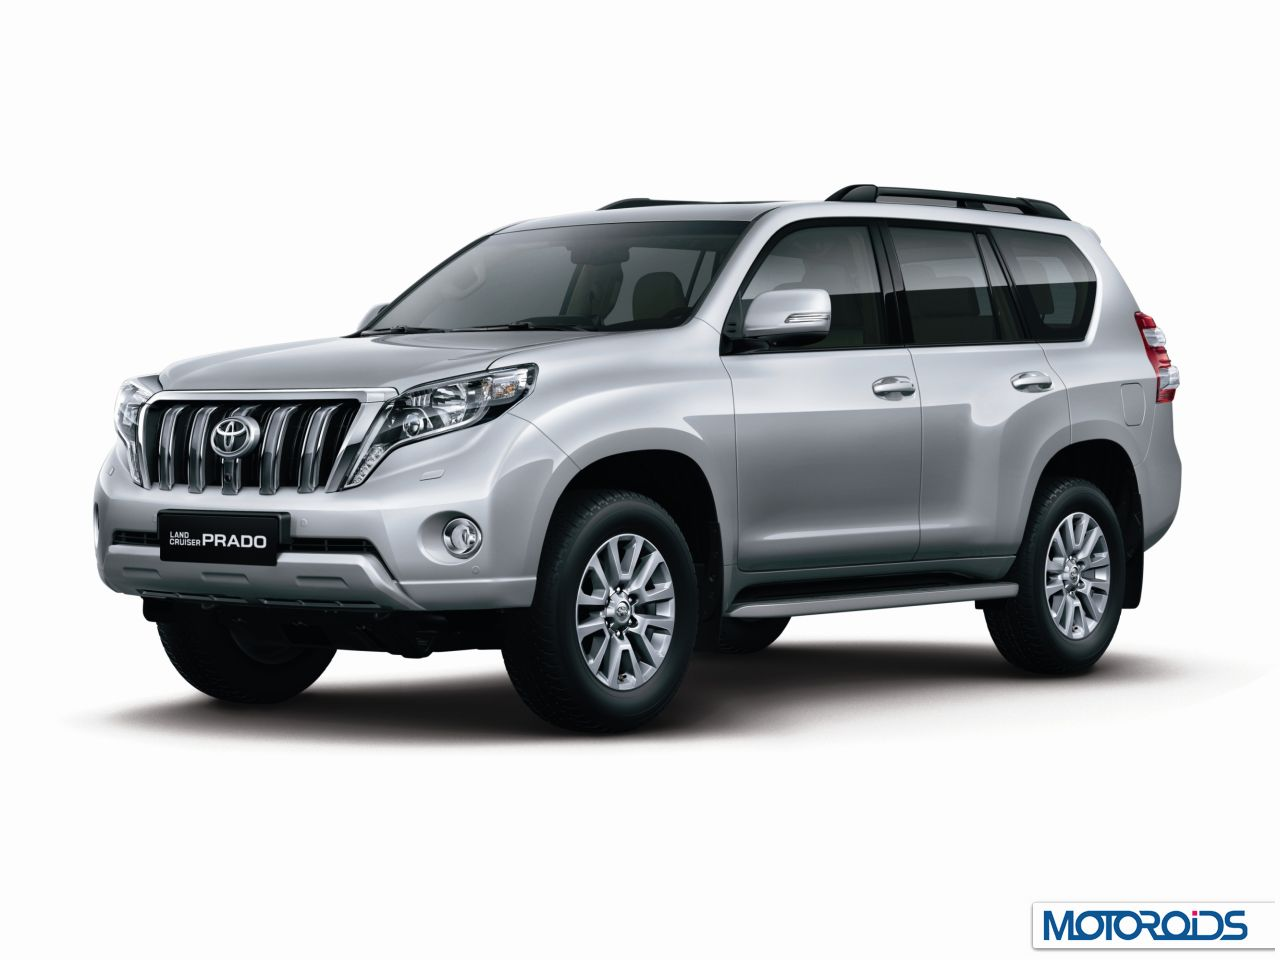 toyota new 2014 land cruiser prado launched in india price inr lakh motoroids. Black Bedroom Furniture Sets. Home Design Ideas